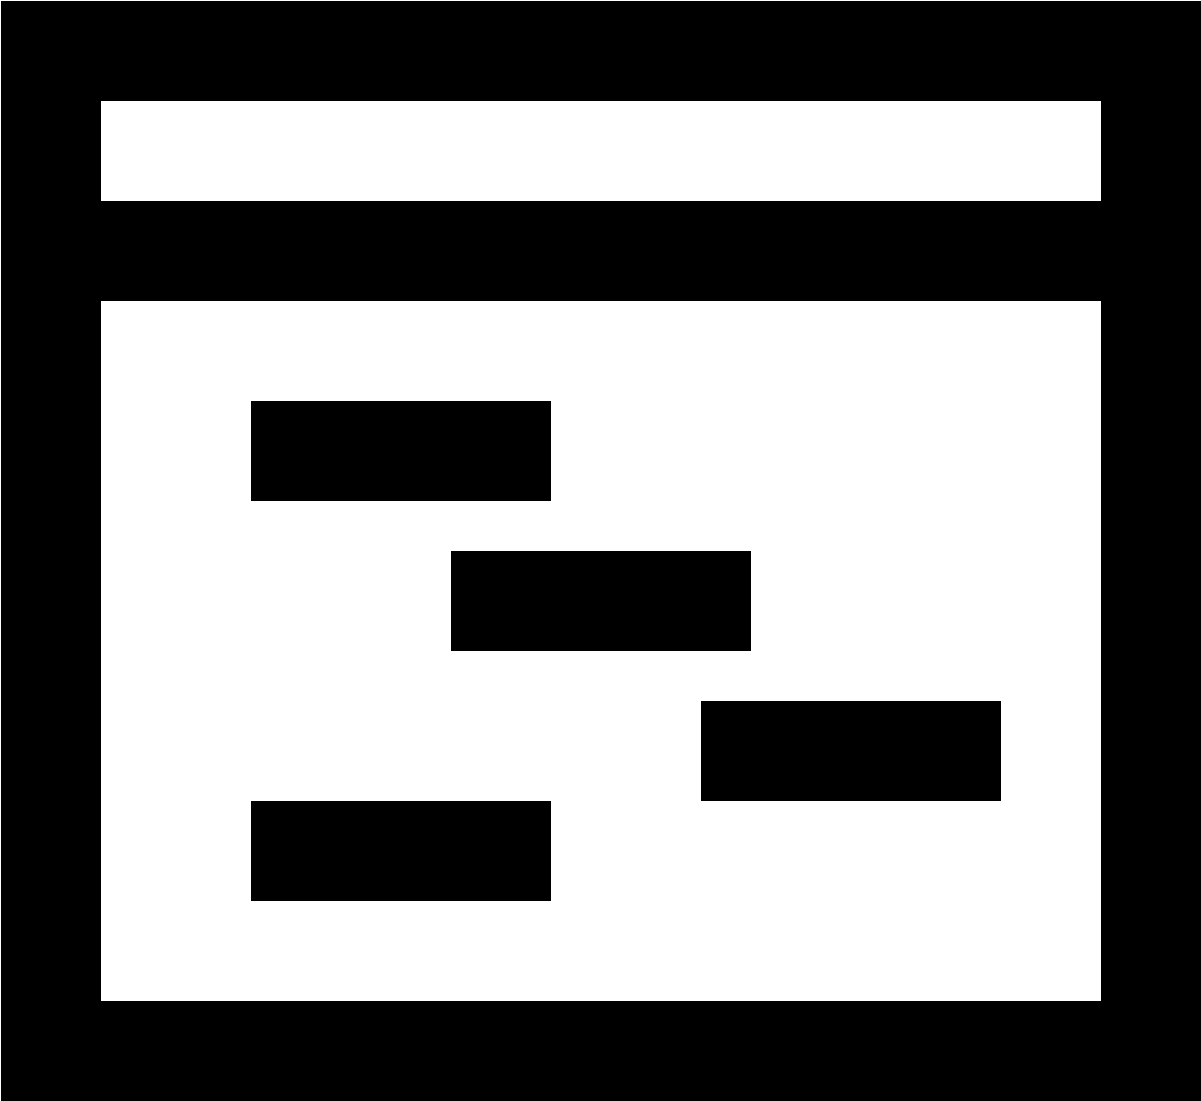 Black square outline png. Download icon image with